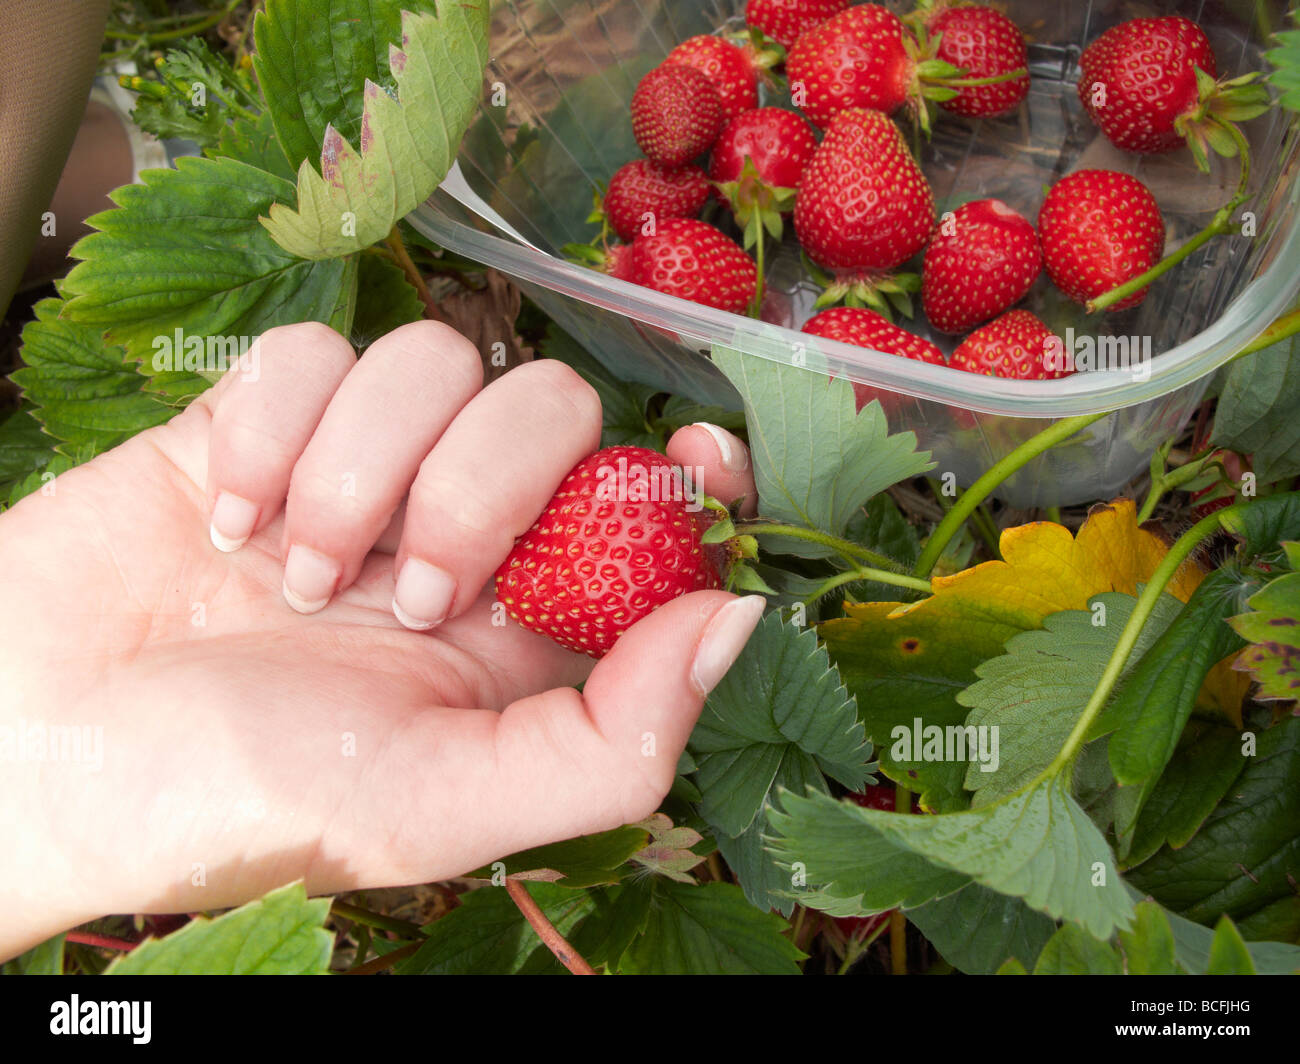 close up of hand holding a stawberry by a container - Stock Image